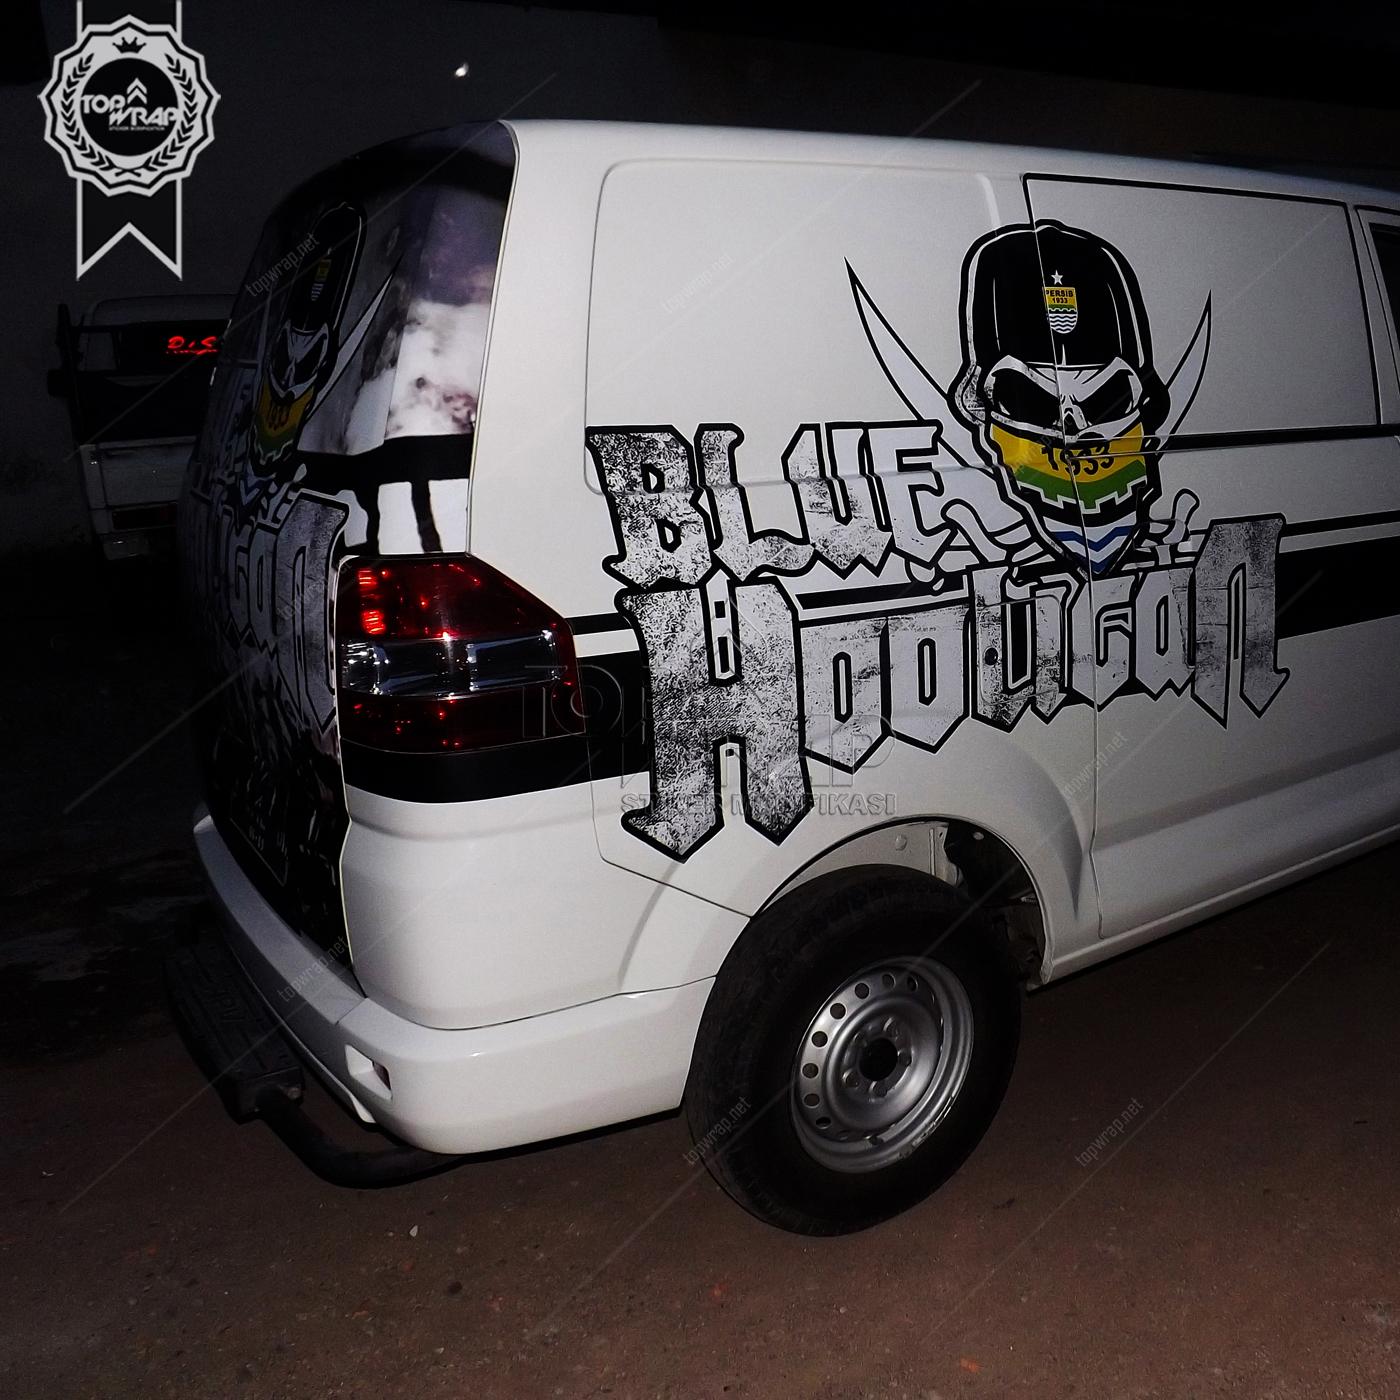 Top Modifikasi Stiker Mobil Apv Pick Up Terbaru | Modifotto